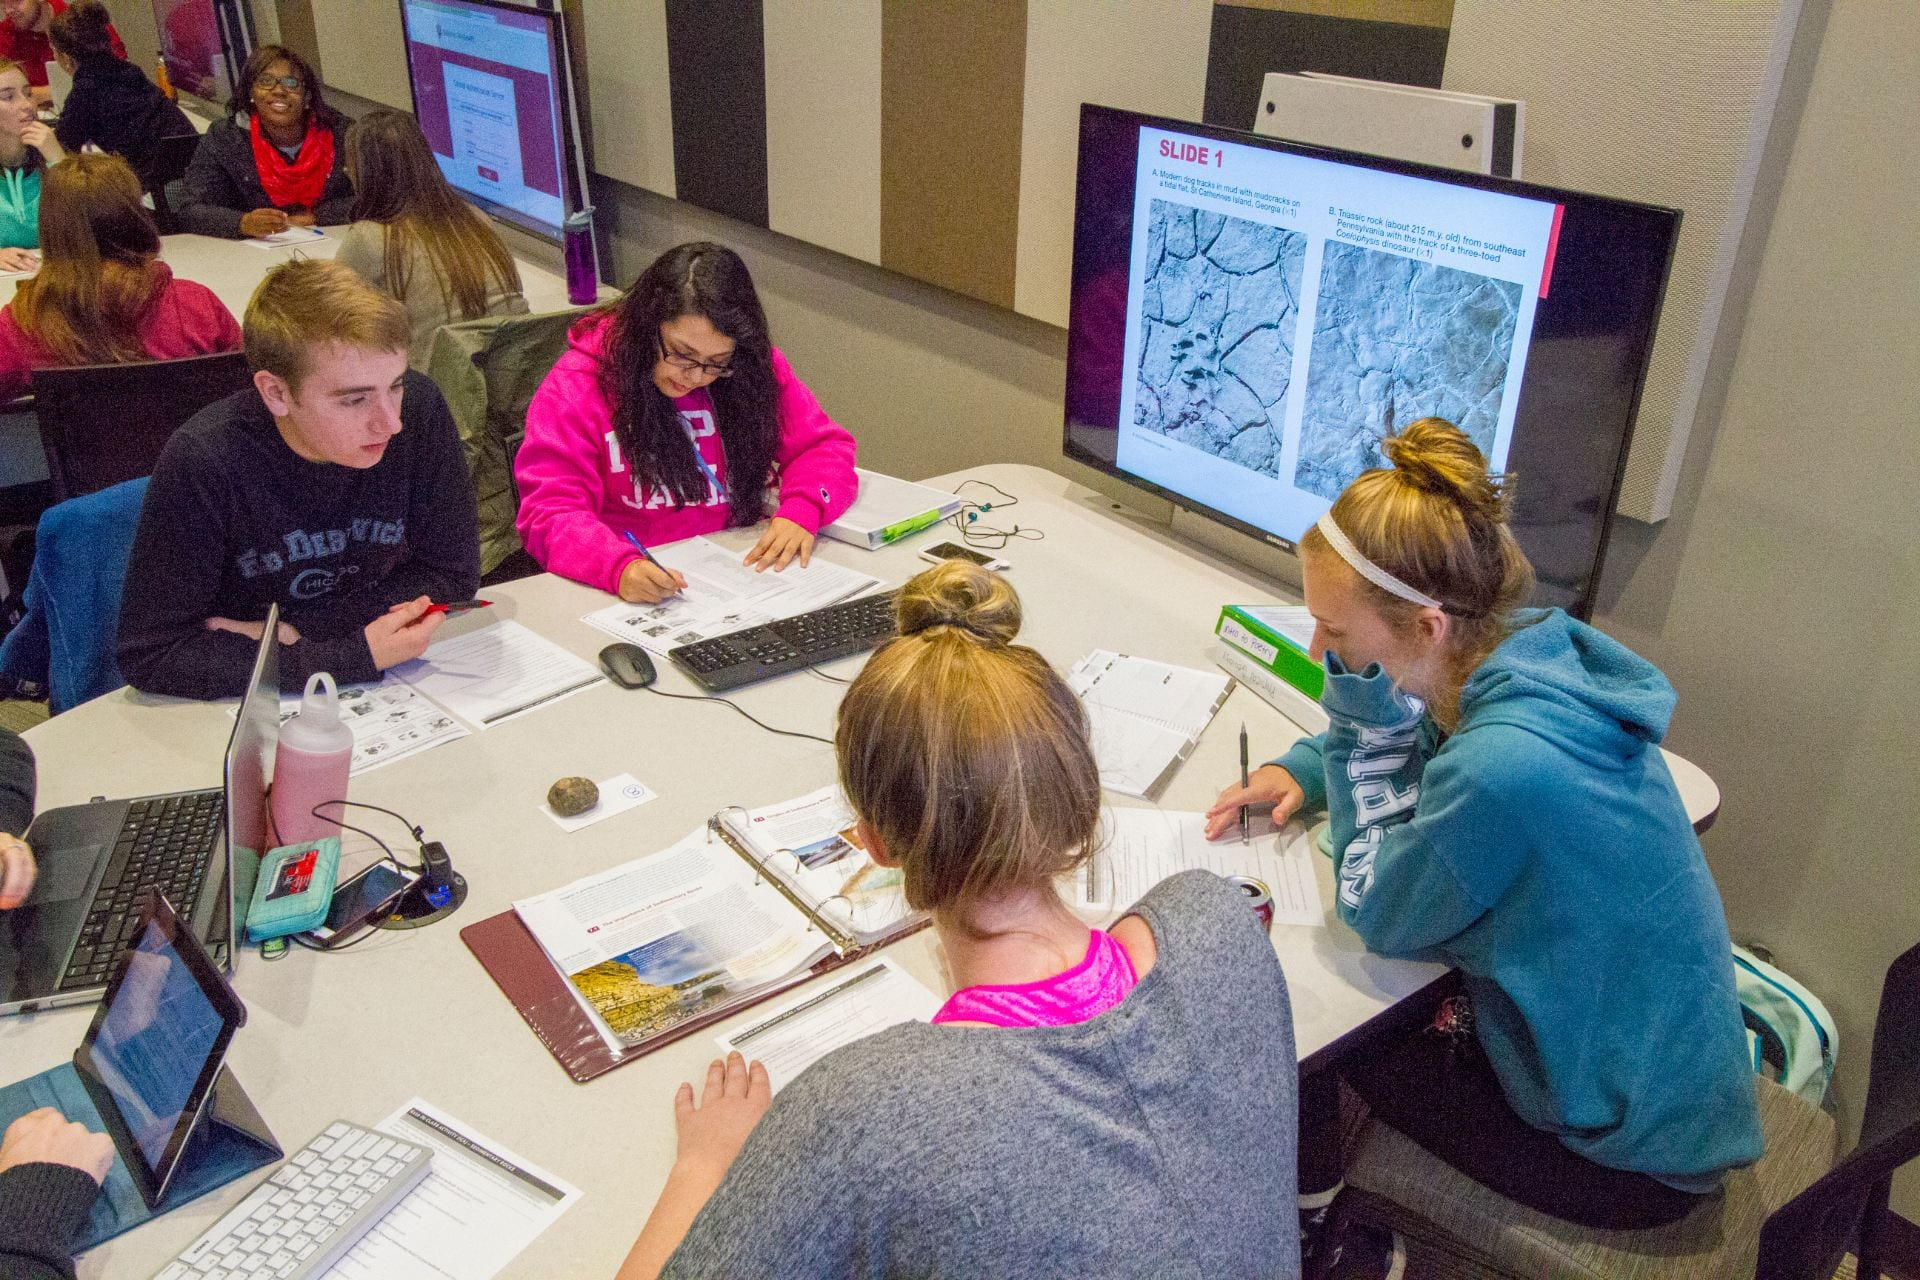 A group of 5 students collaborate at their group table in IUPUI's Lecture Hall LE 104